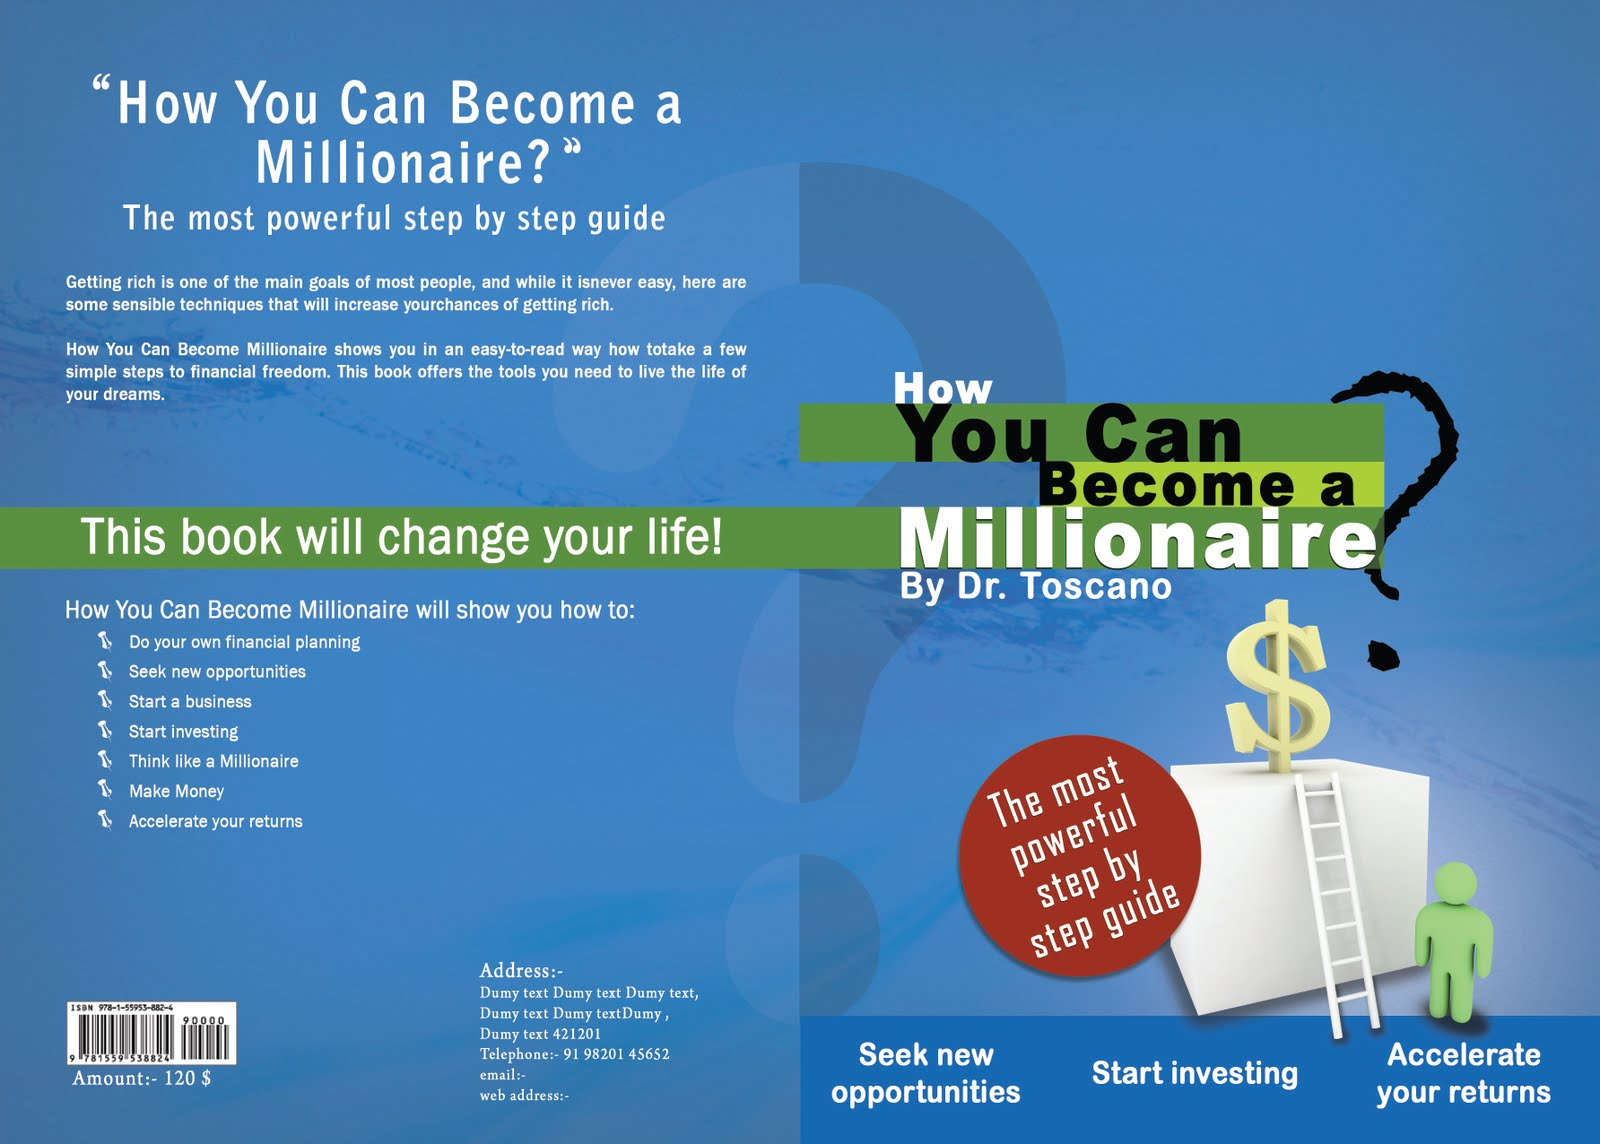 how to become a millionaire by 20